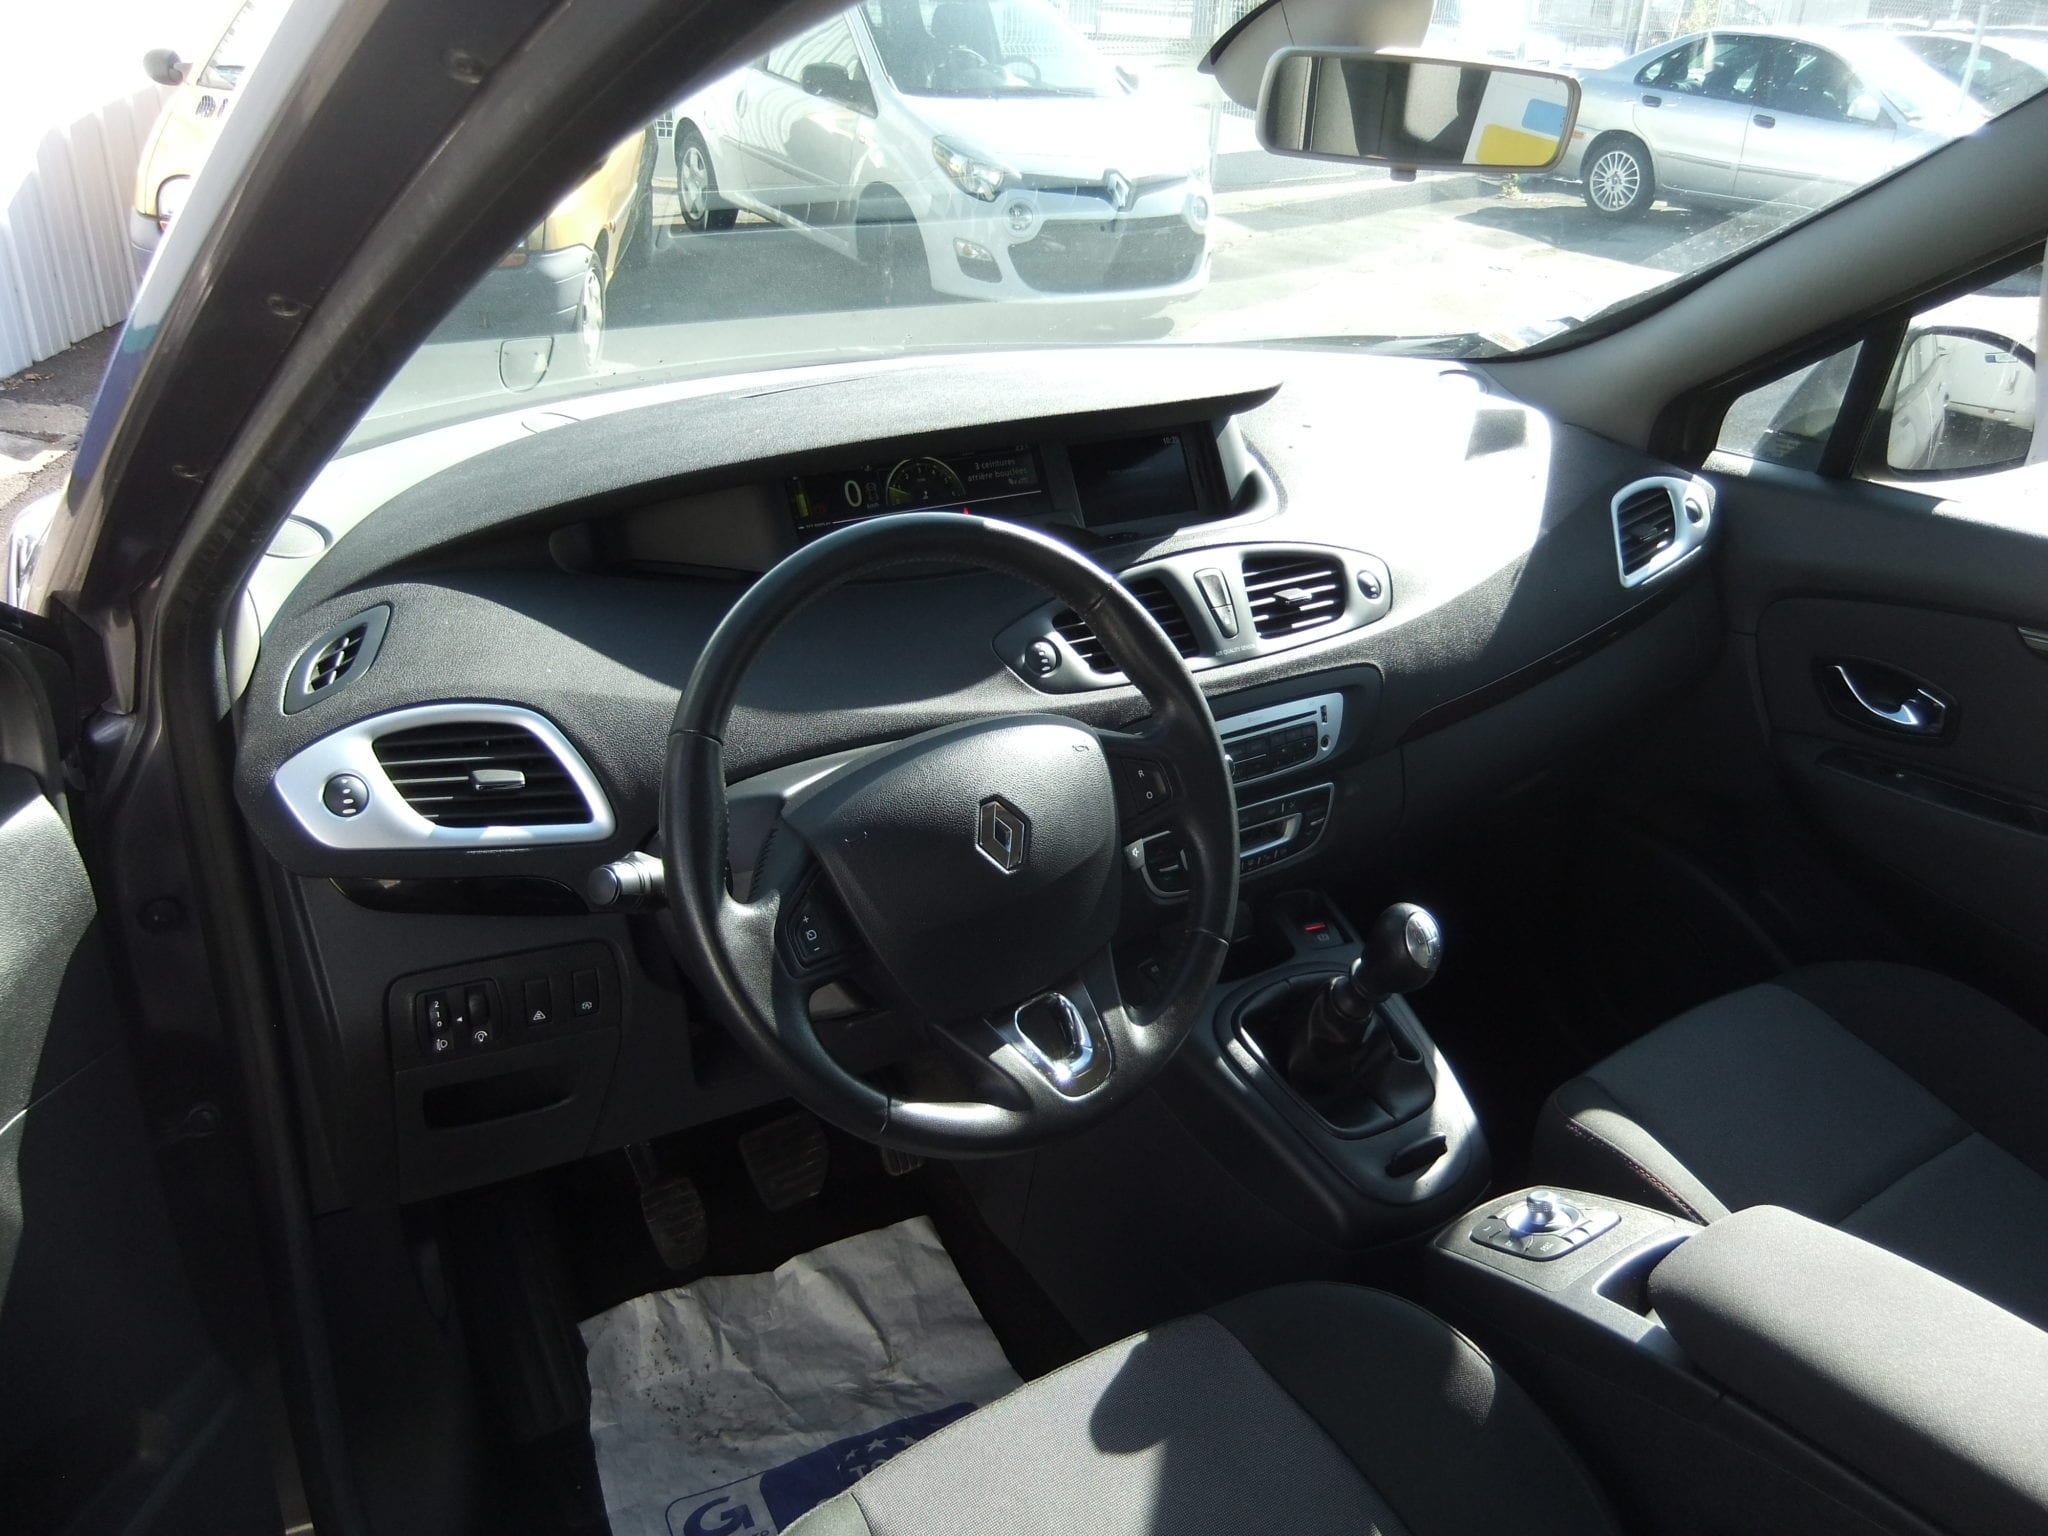 RENAULT SCENIC 3 DCI 110 Energy Business ECO 2  - Image 5